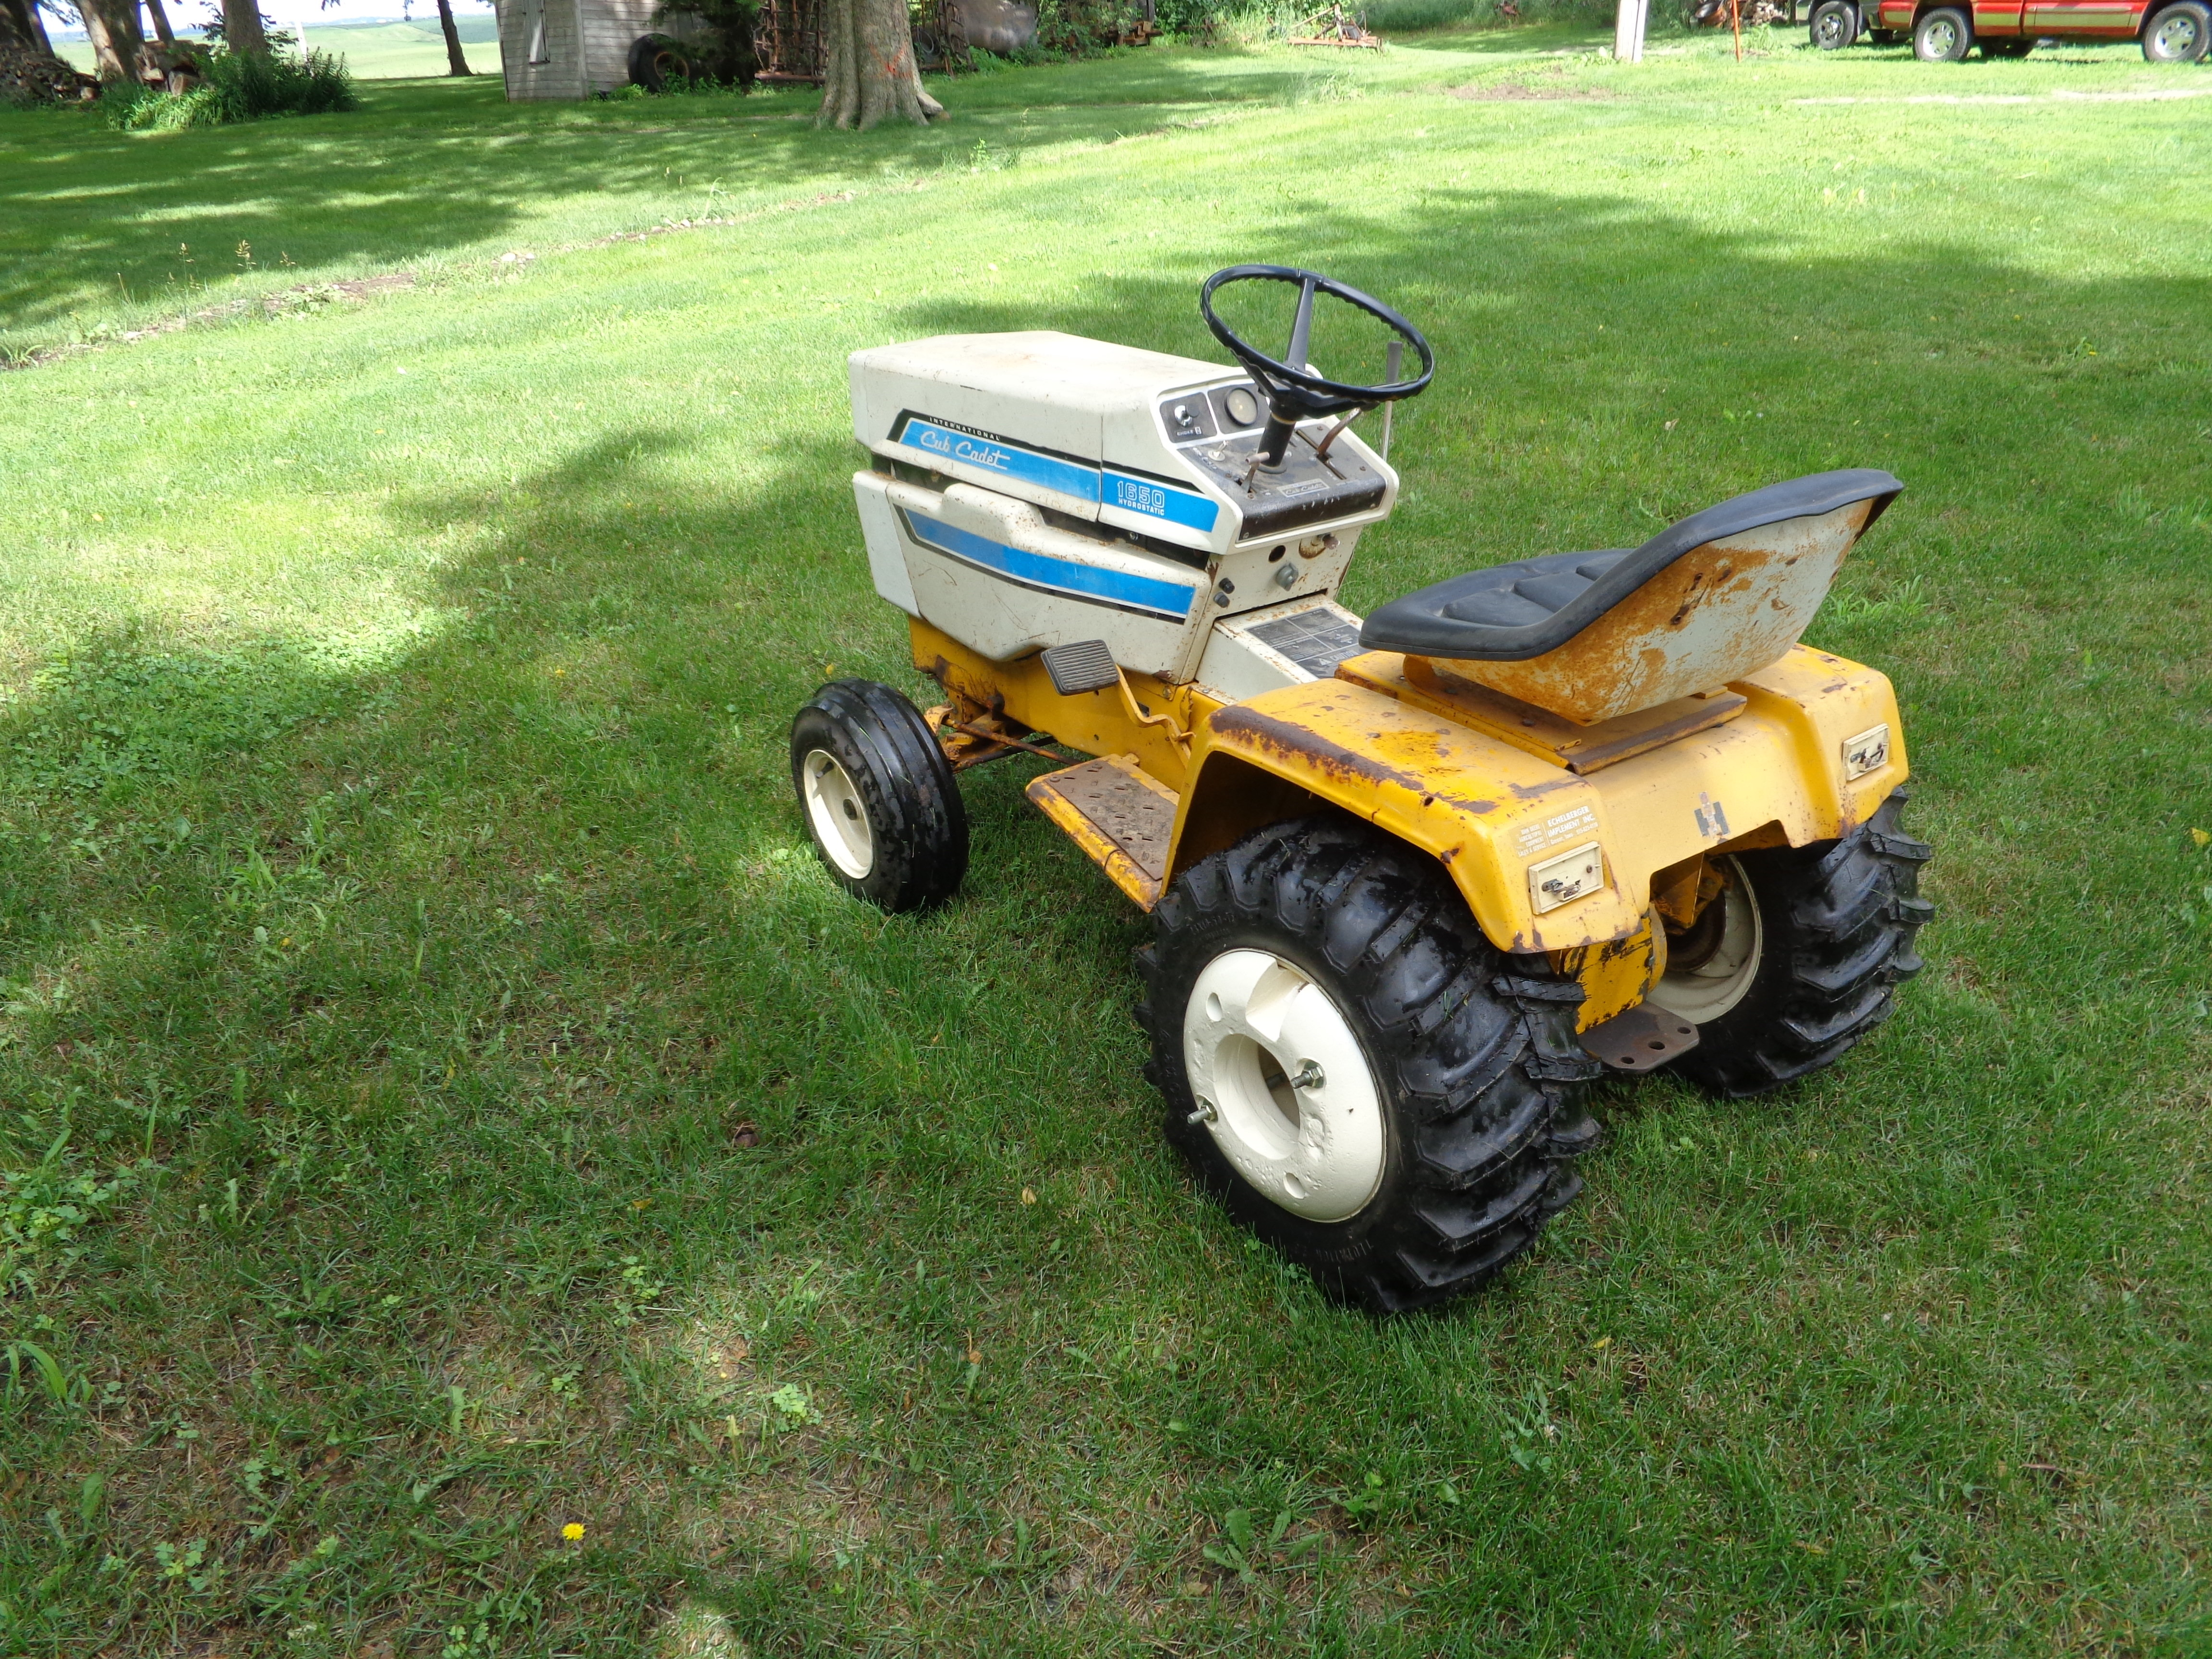 so now i need two good switches  it may help cut grass around here yet this  year, the 1450 is still in need of lots of love though i do have most of  the